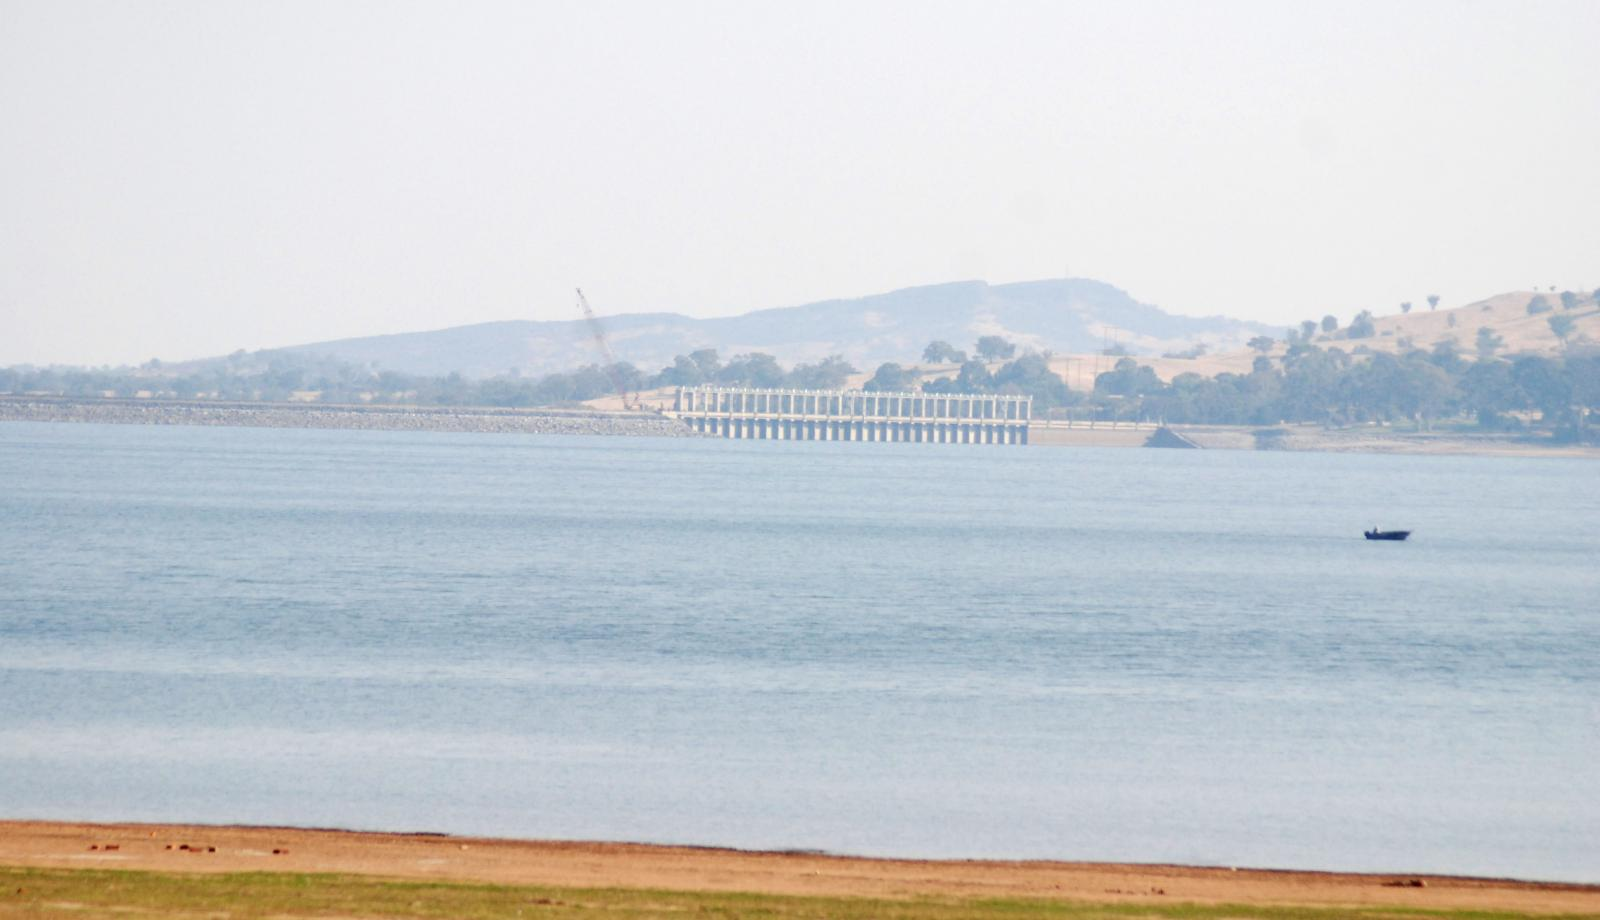 No risk of spill for irrigators